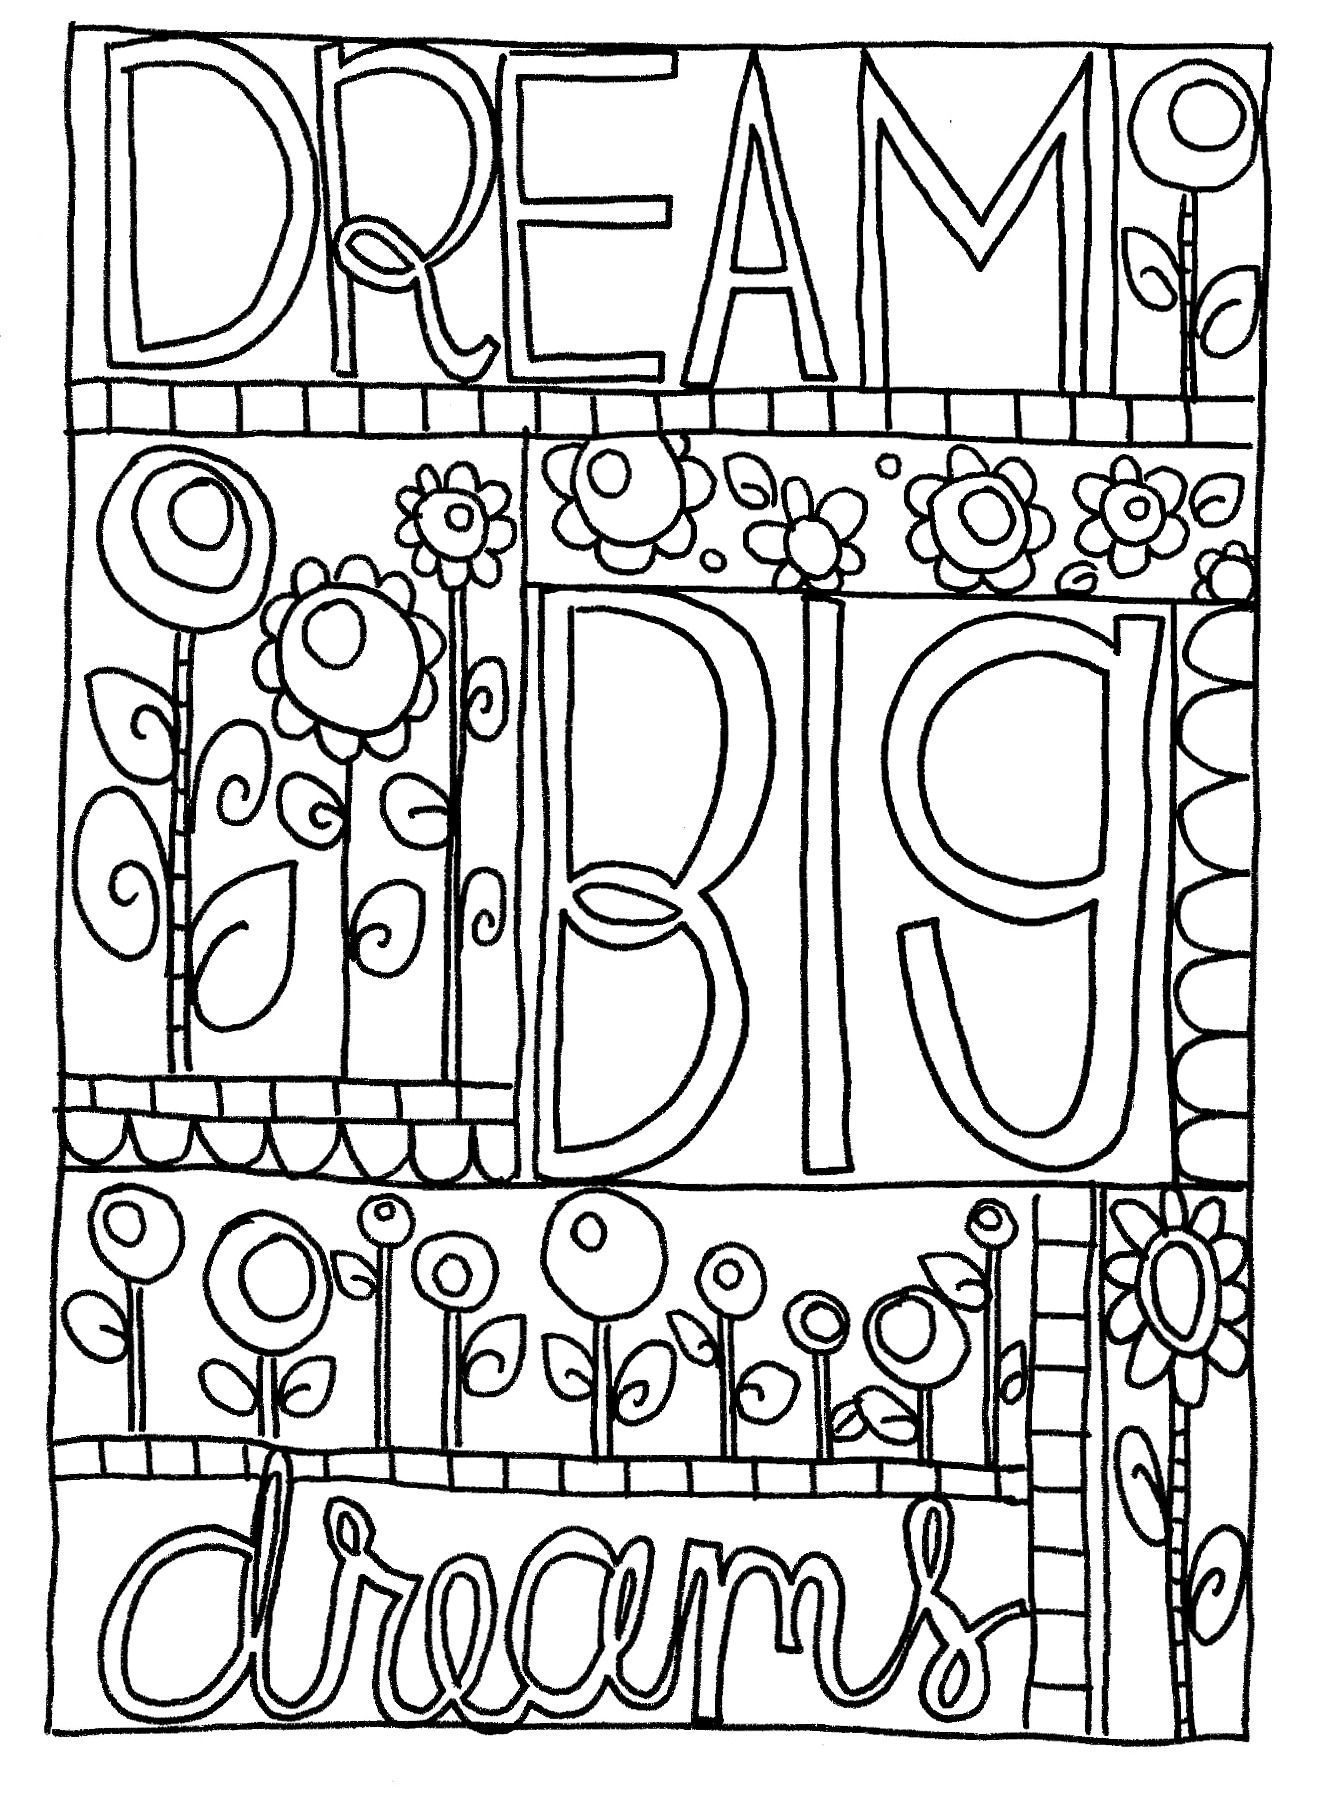 dream big coloring - Google Search | Coloring pages in 2018 ...